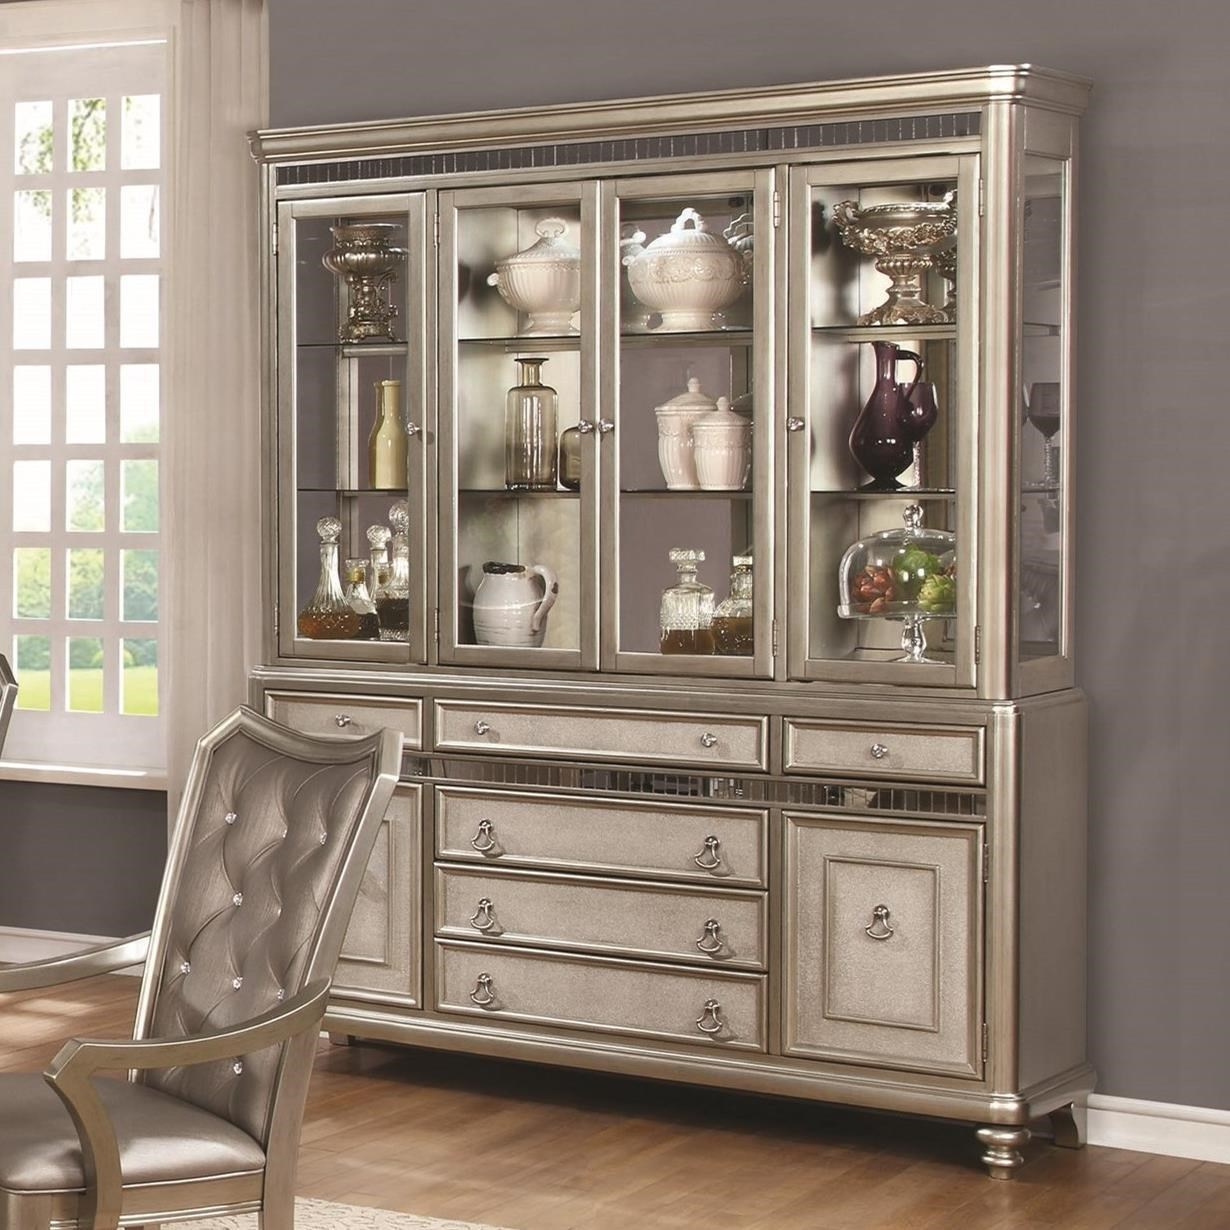 Coaster danette server and china cabinet with led